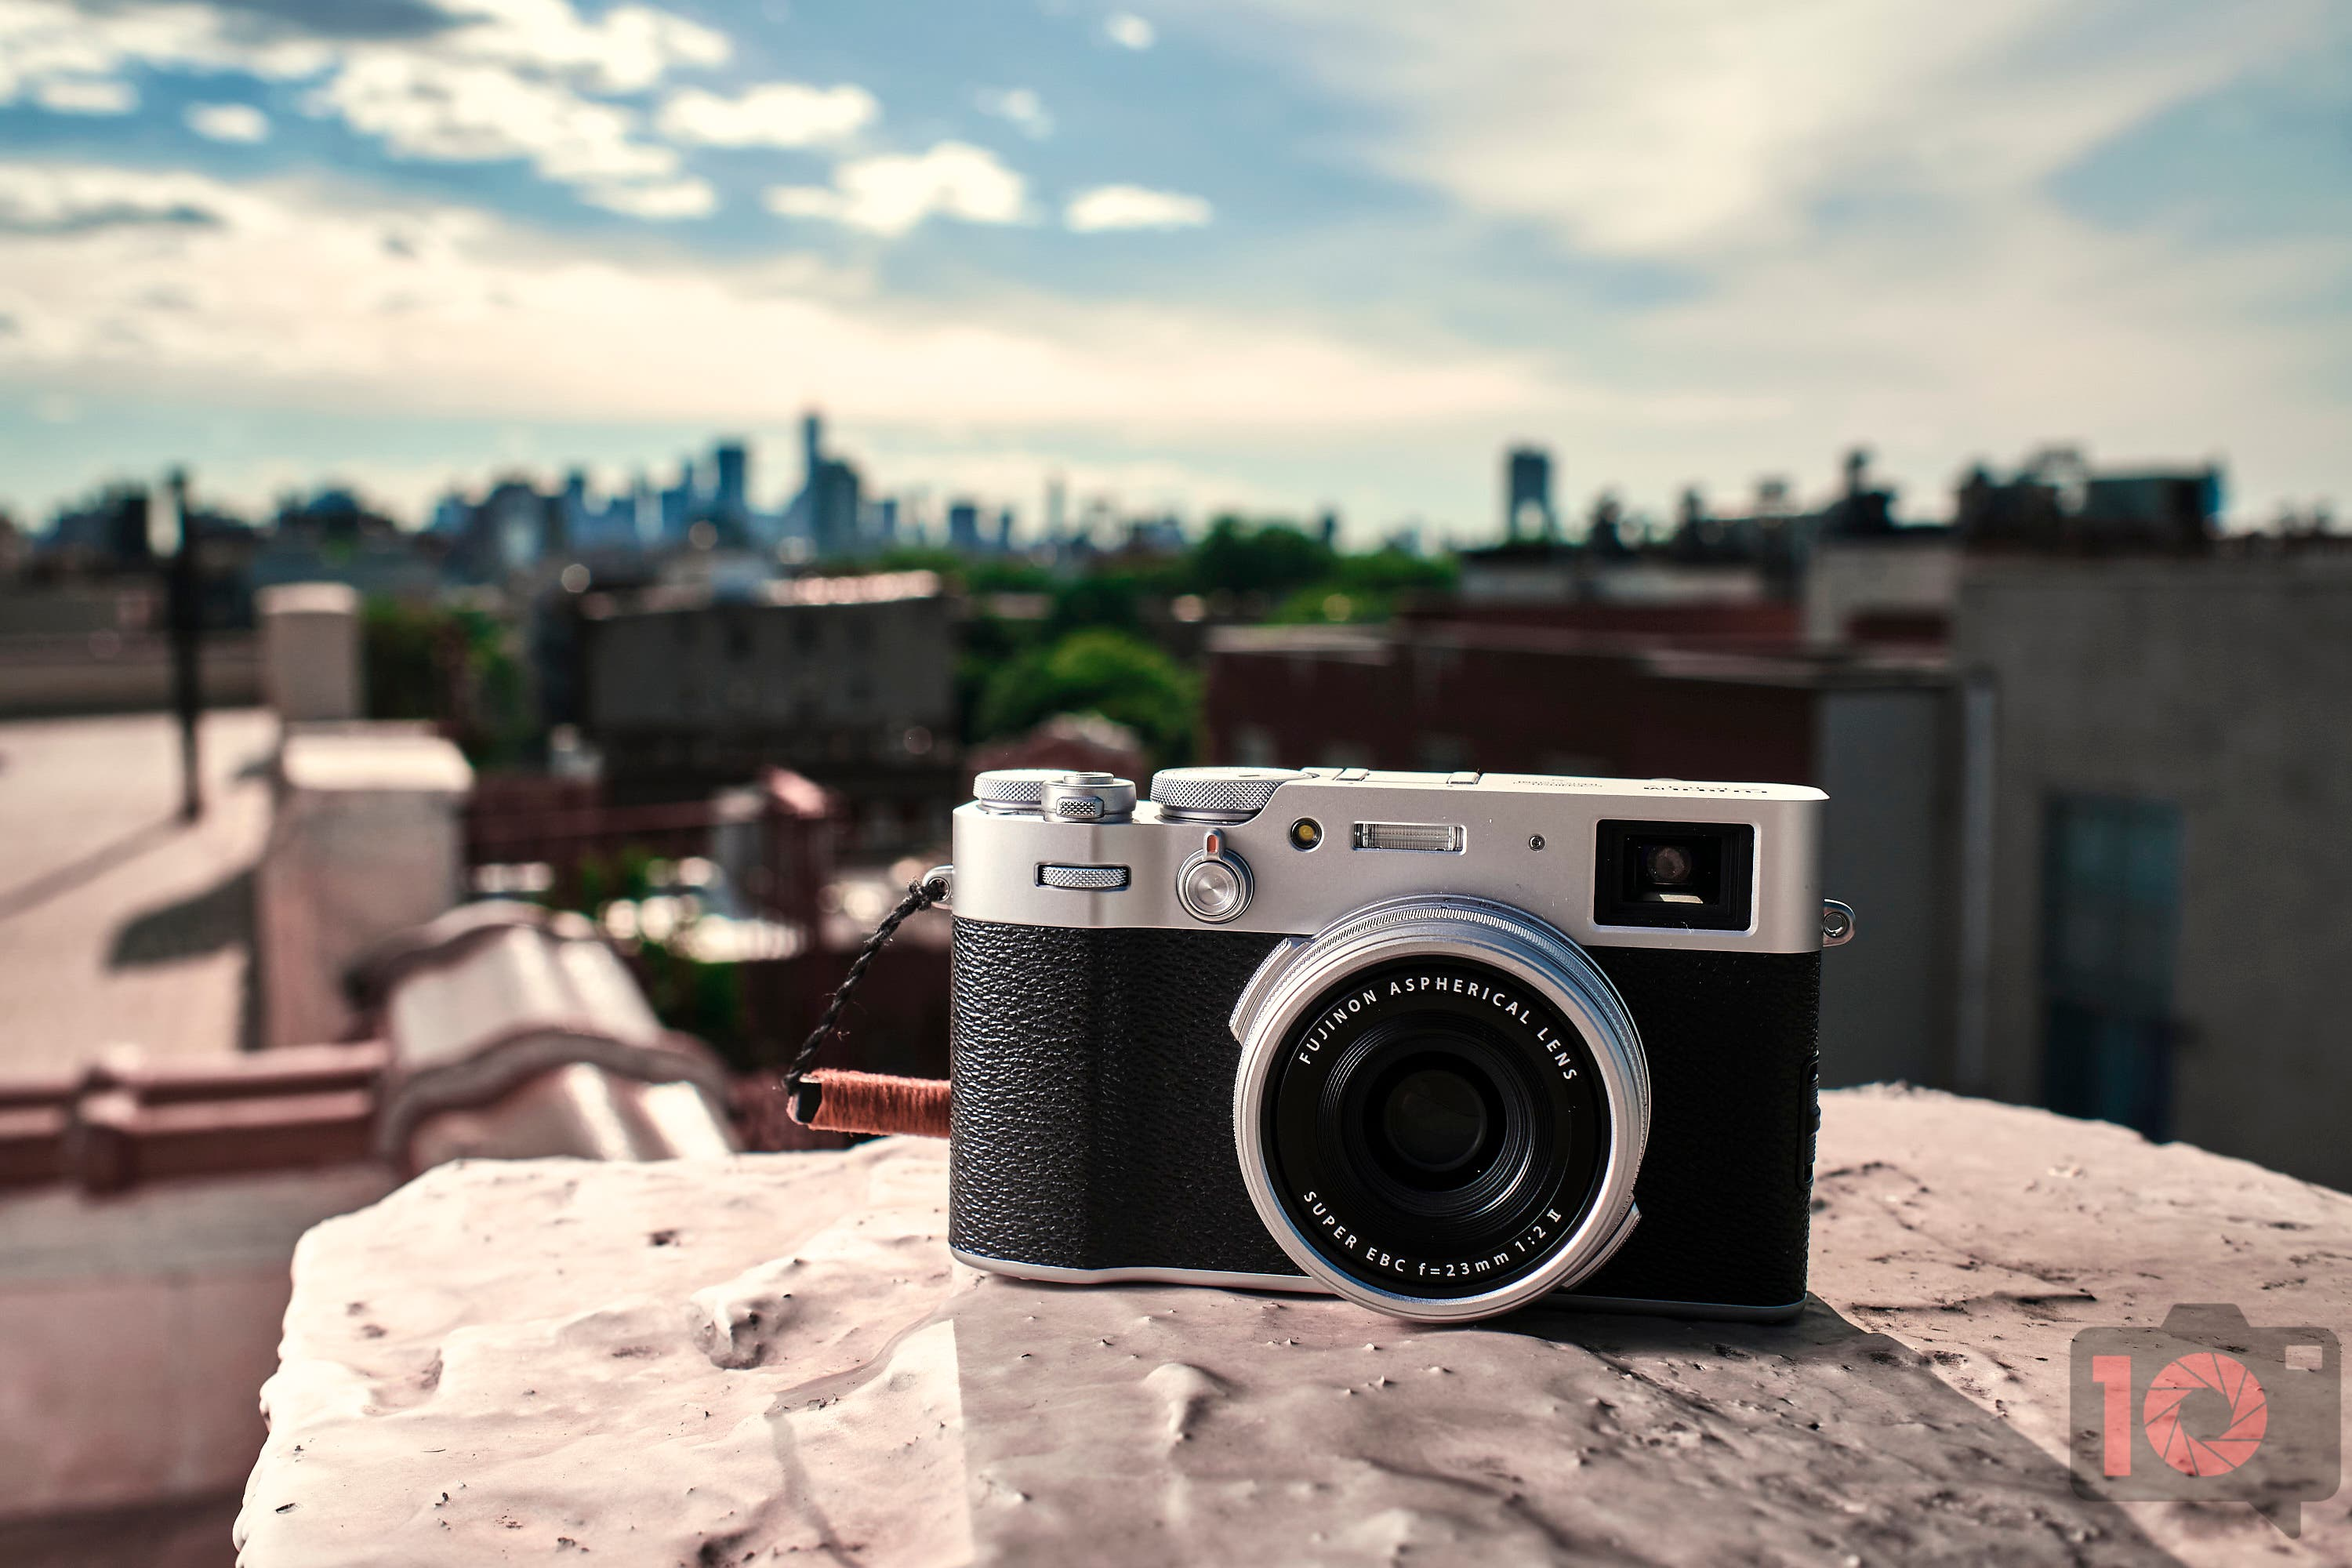 How the Next Fujifilm X100 Camera Can Be Even Better